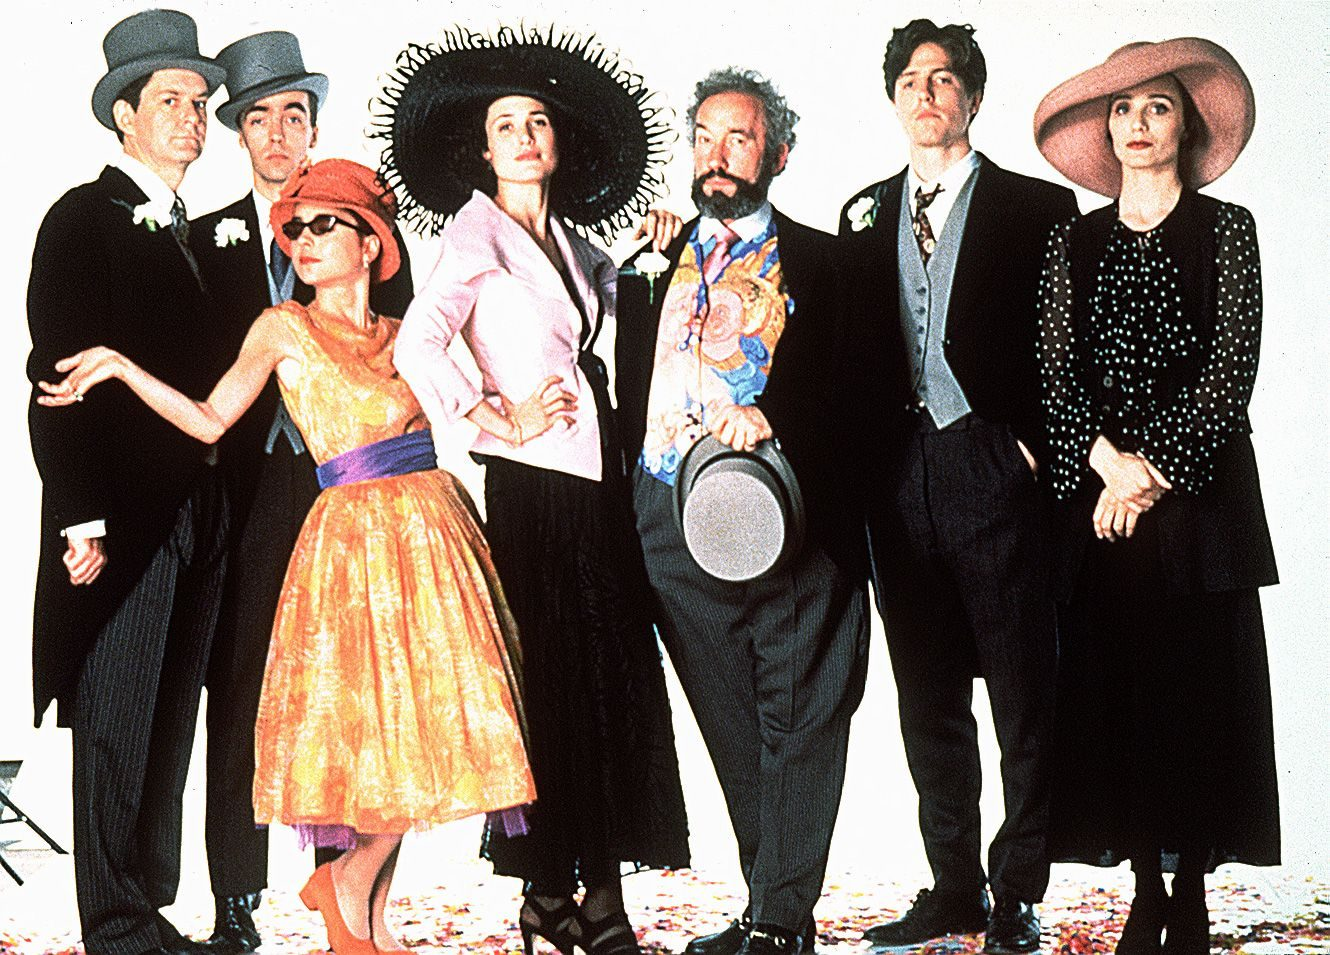 'Four Weddings and a Funeral' at Twenty-Five: A Look Back